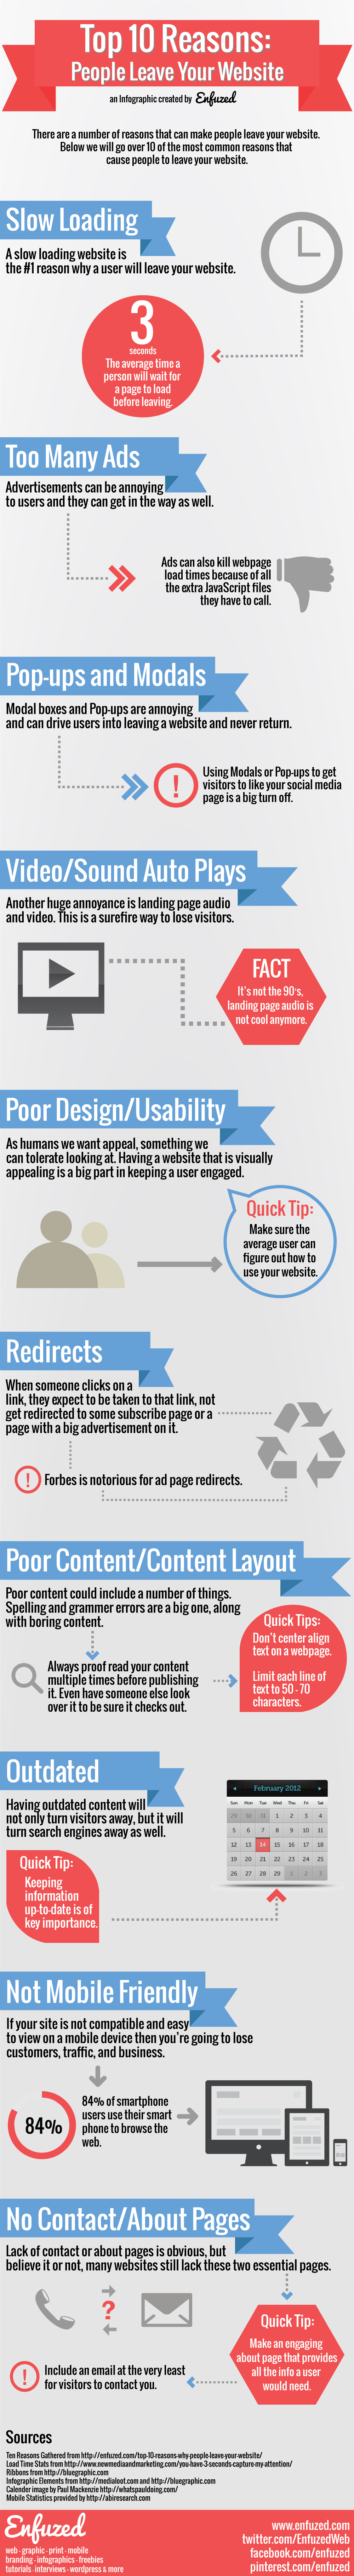 Major Reasons to Consider as Why People Leave Your Website